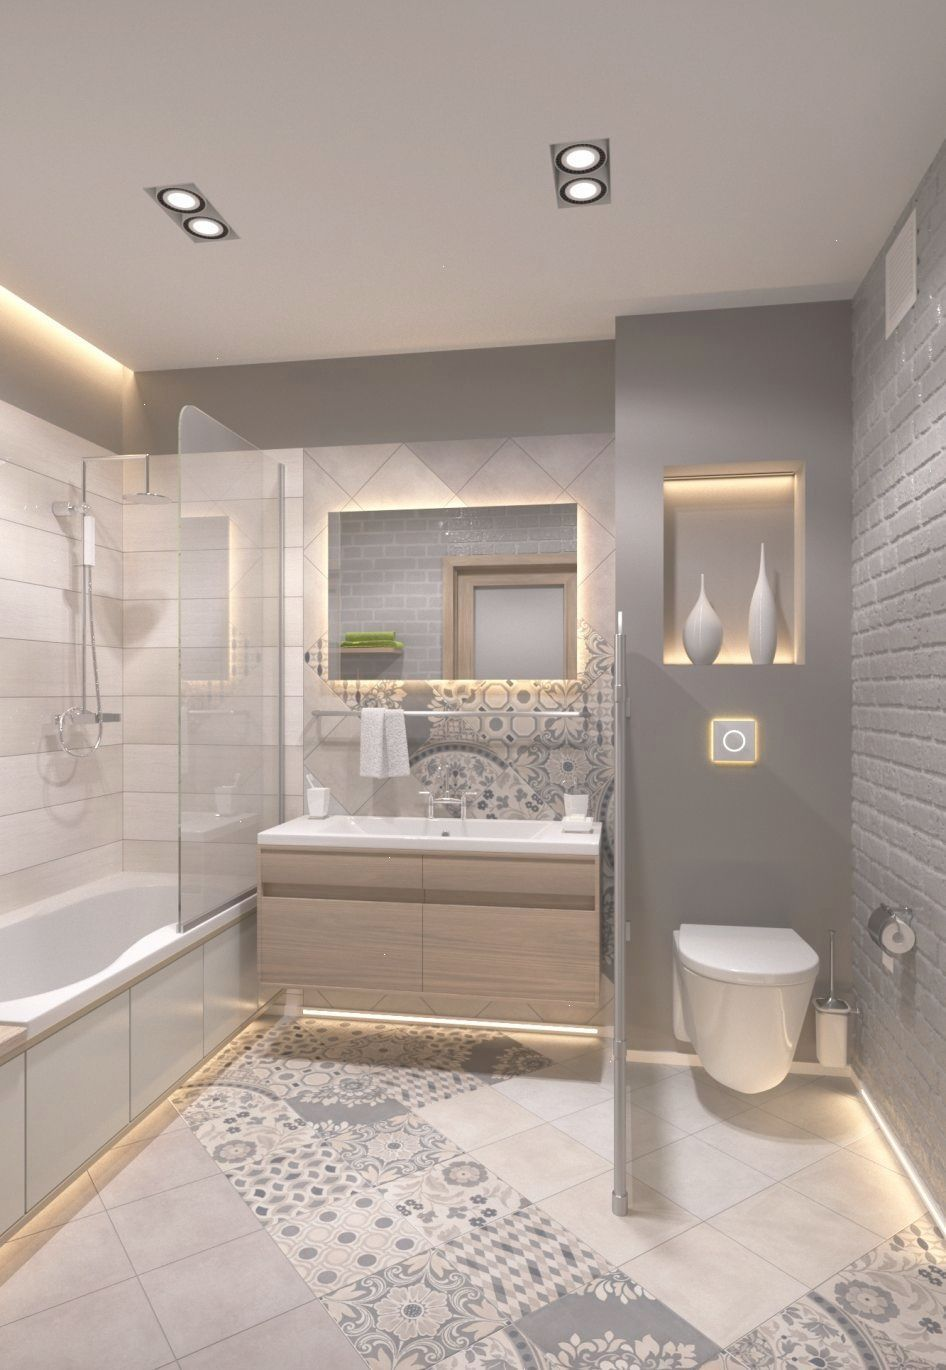 Small Bathroom Ideas And Small Bathroom Designs For Both City And Country Homes From Small Small Master Bathroom Small Bathroom Styles Bathroom Remodel Master